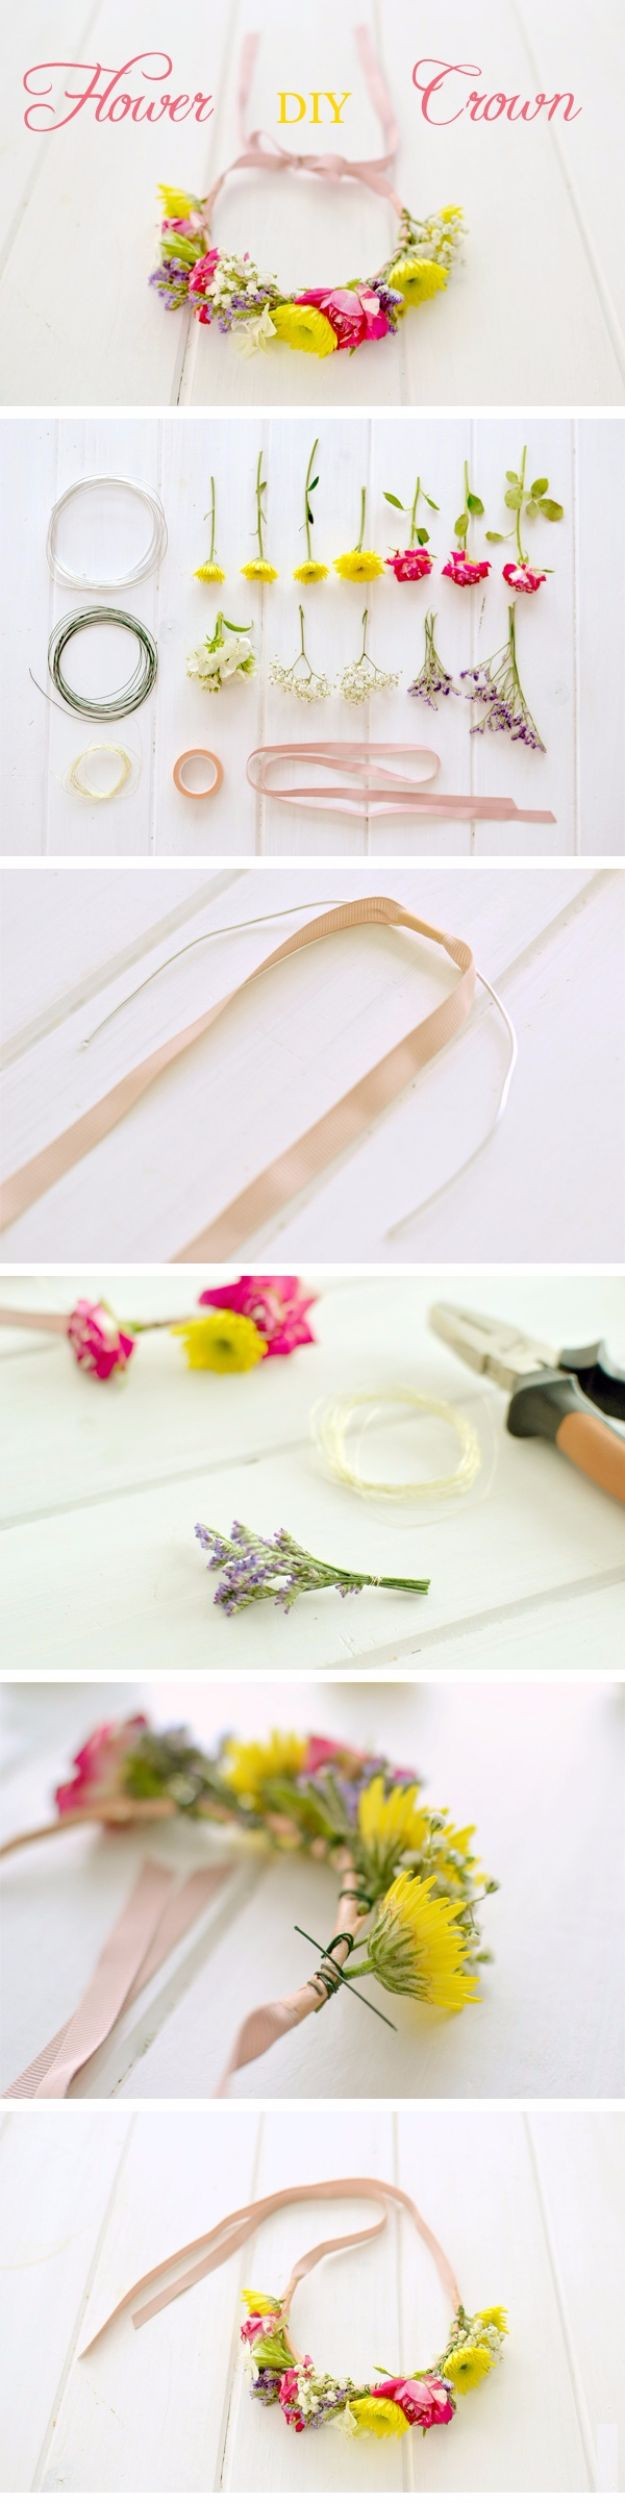 Cool Summer Fashions for Teens - Easy DIY Flower Crown - Easy Sewing Projects and No Sew Crafts for Fun Fashion for Teenagers - DIY Clothes, Shoes and Accessories for Summertime Looks - Cheap and Creative Ways to Dress on A Budget http://diyprojectsforteens.com/diy-summer-fashion-teens